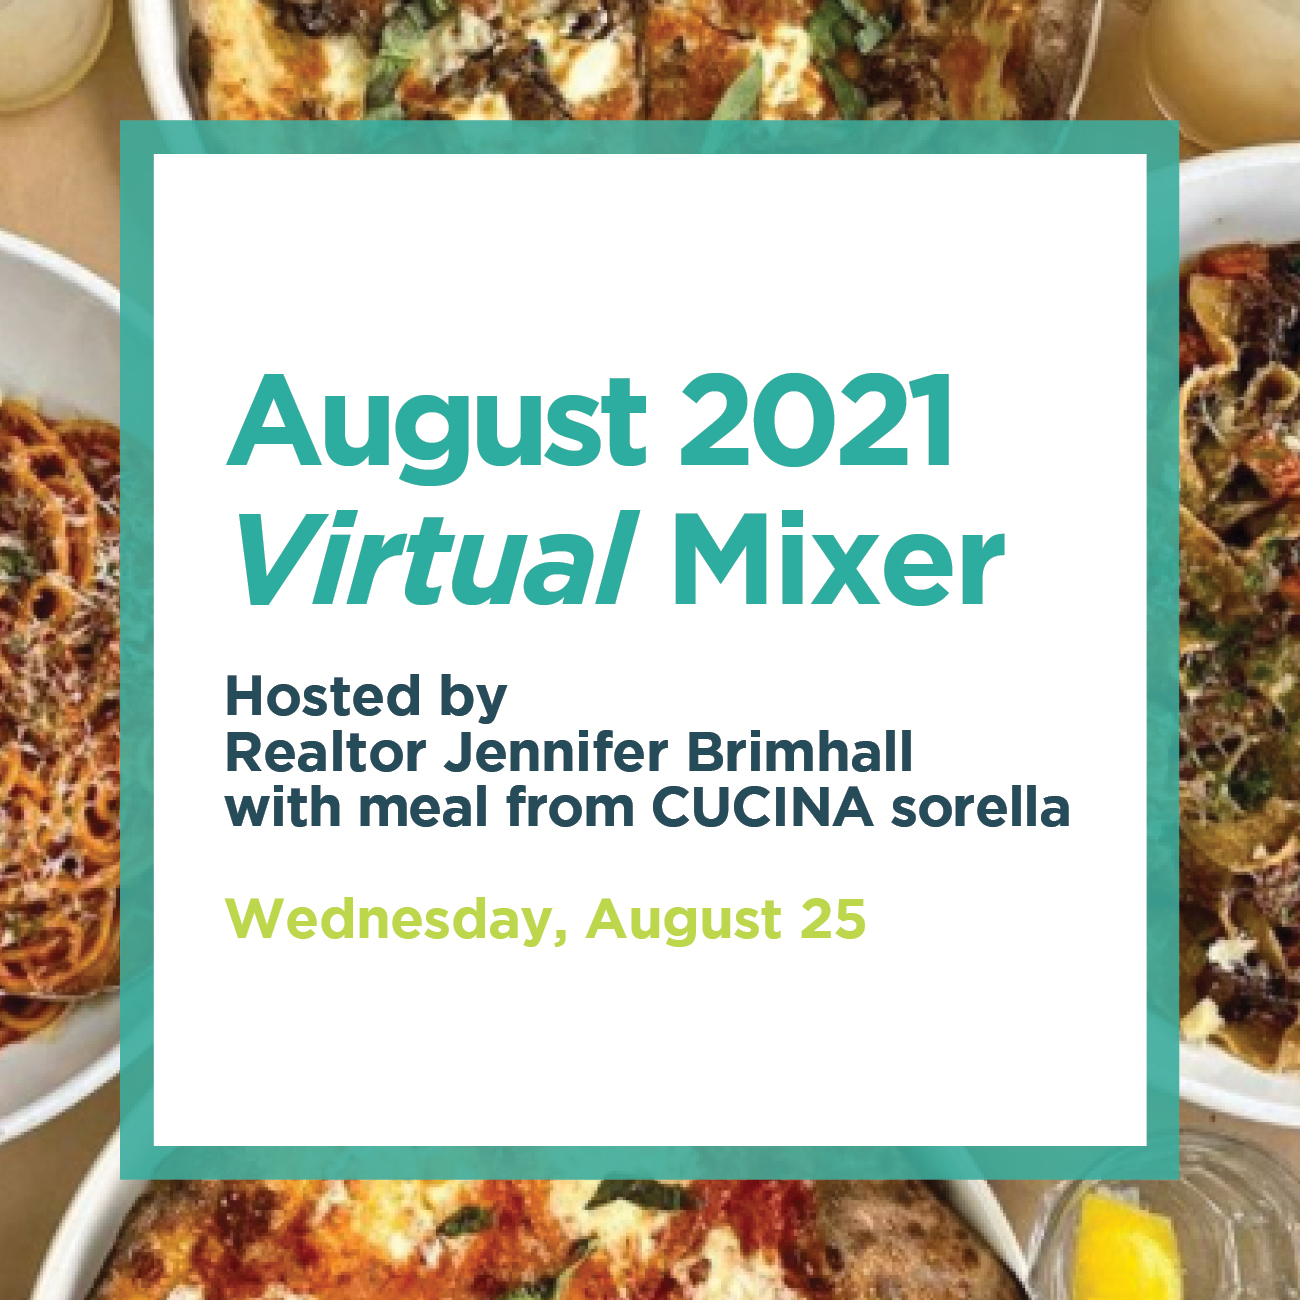 August 2021 Virtual Mixer Hosted by Realtor Jennifer Brimhall with meal from CUCINA sorella Wednesday, August 25